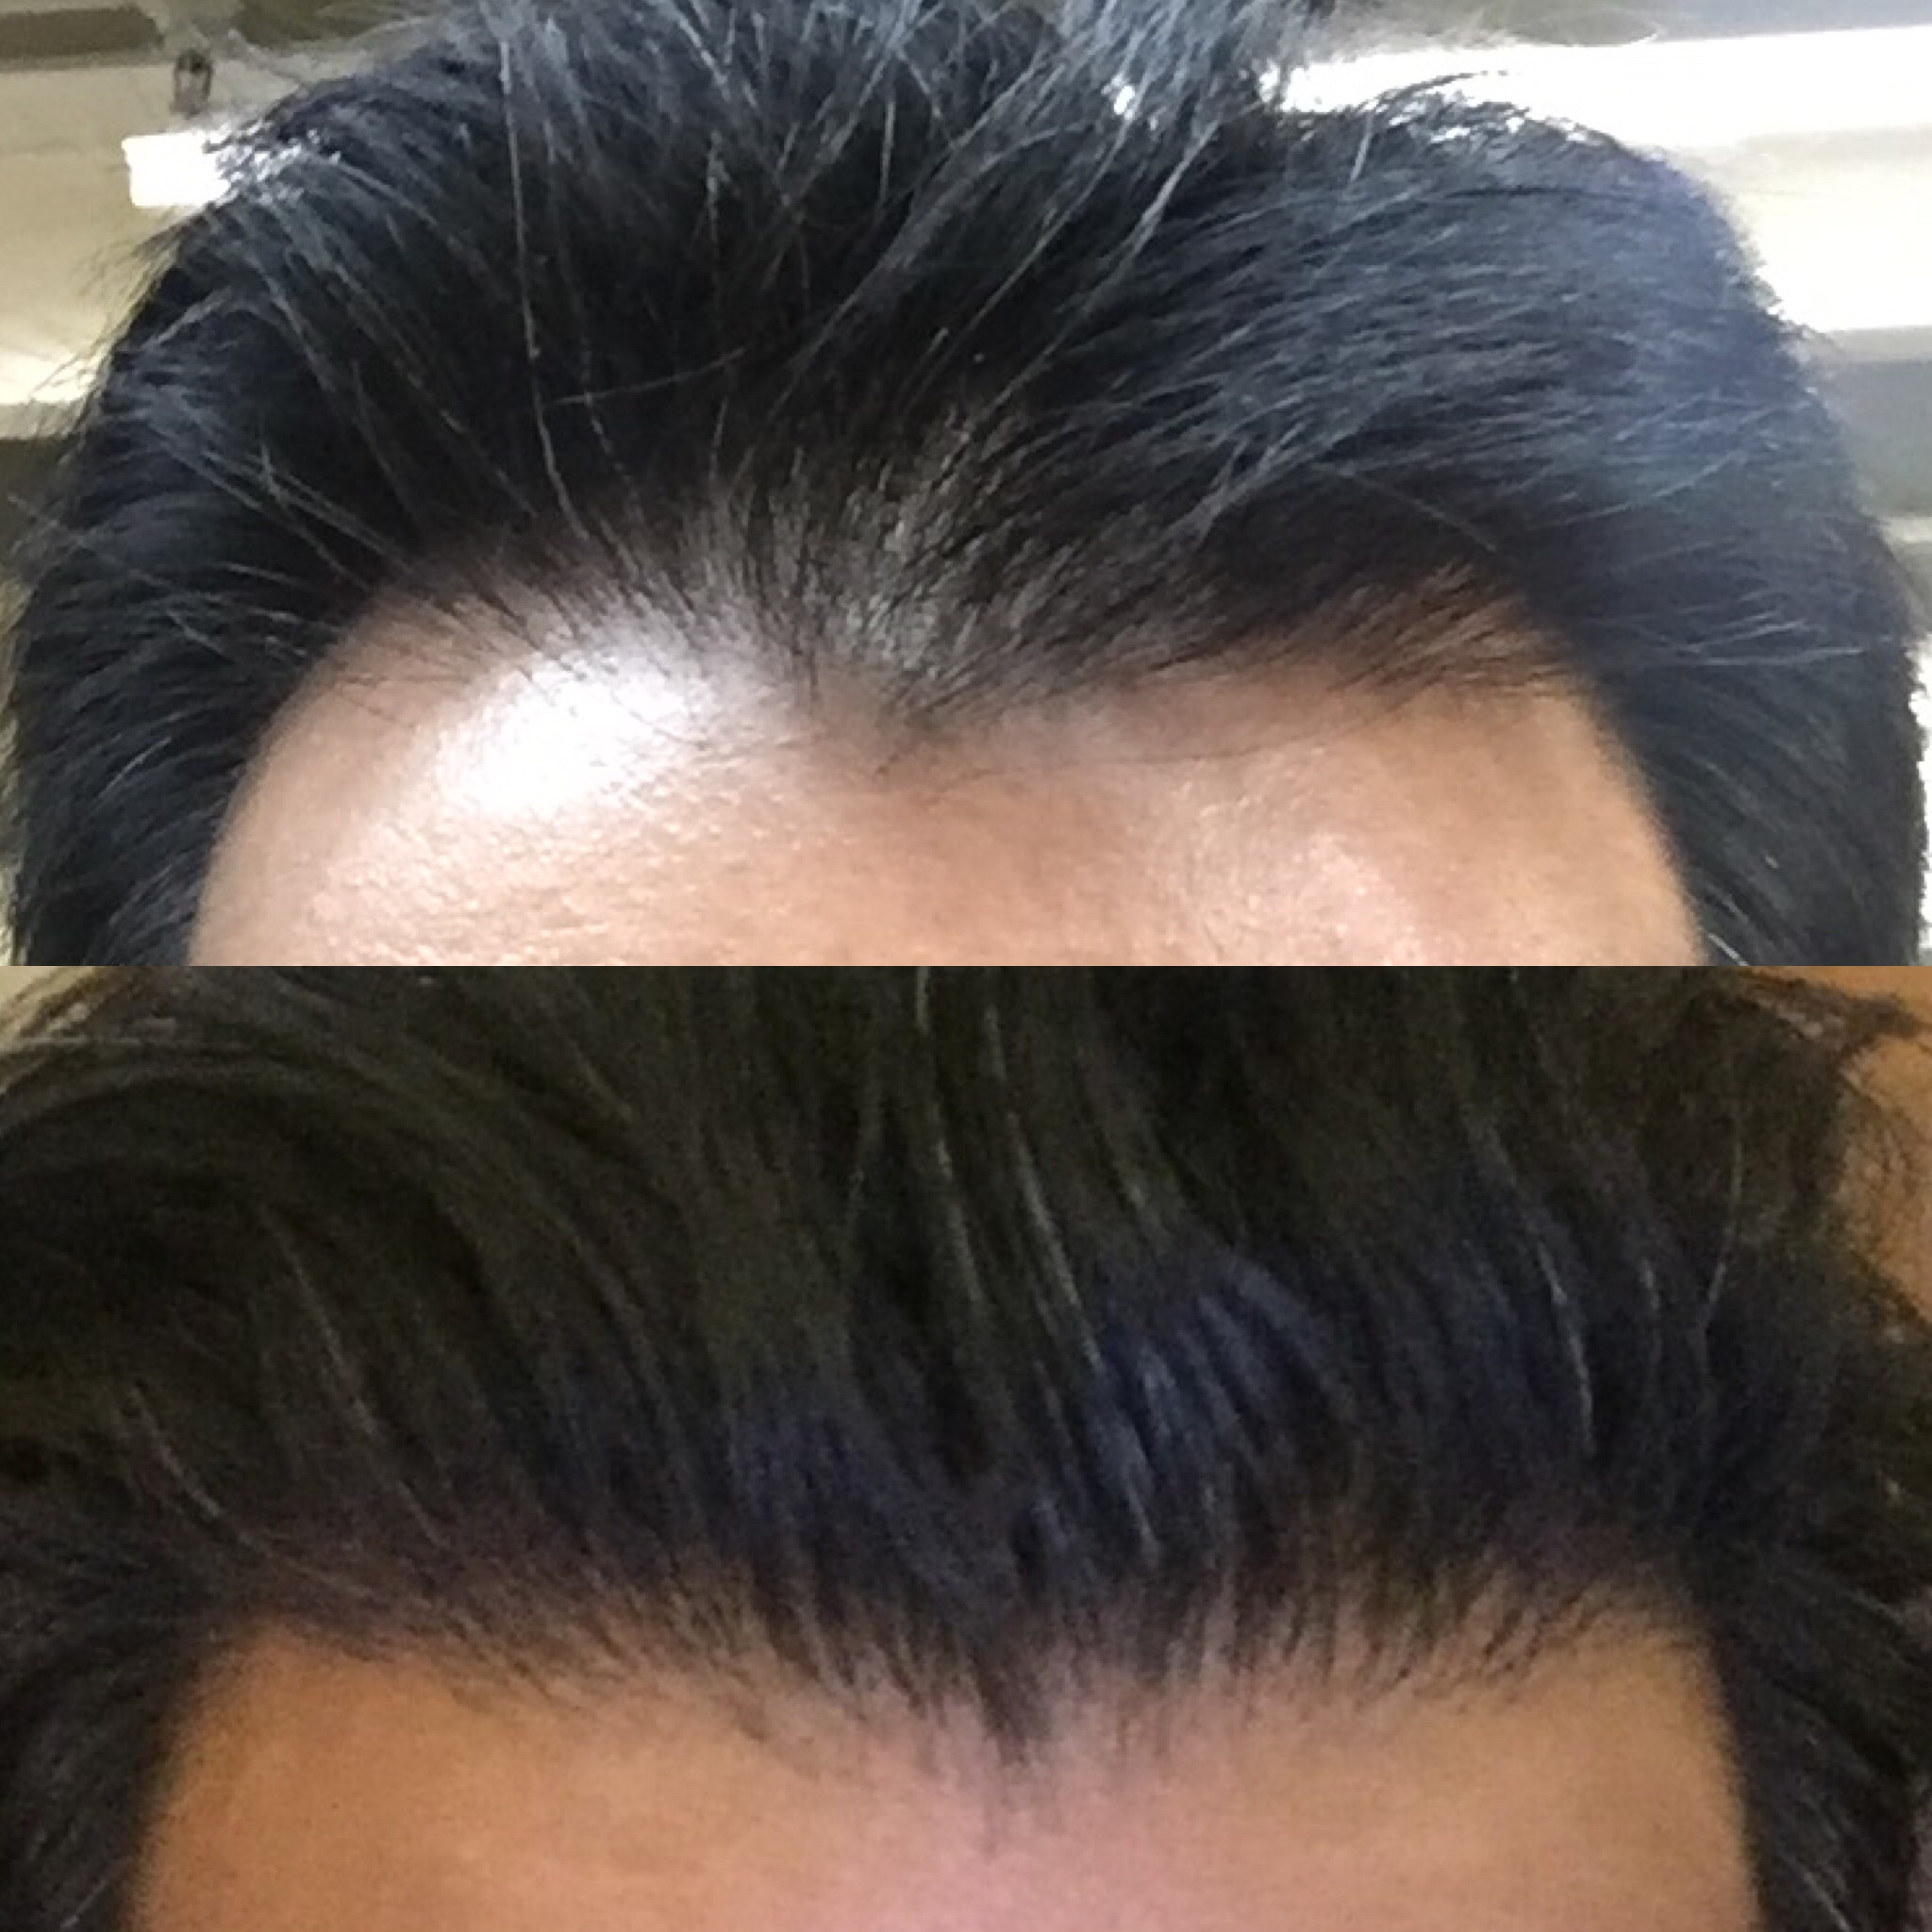 Substantial Hair Growth In The Hairline After 4 Sessions Using Platelet Rich Plasma Prp